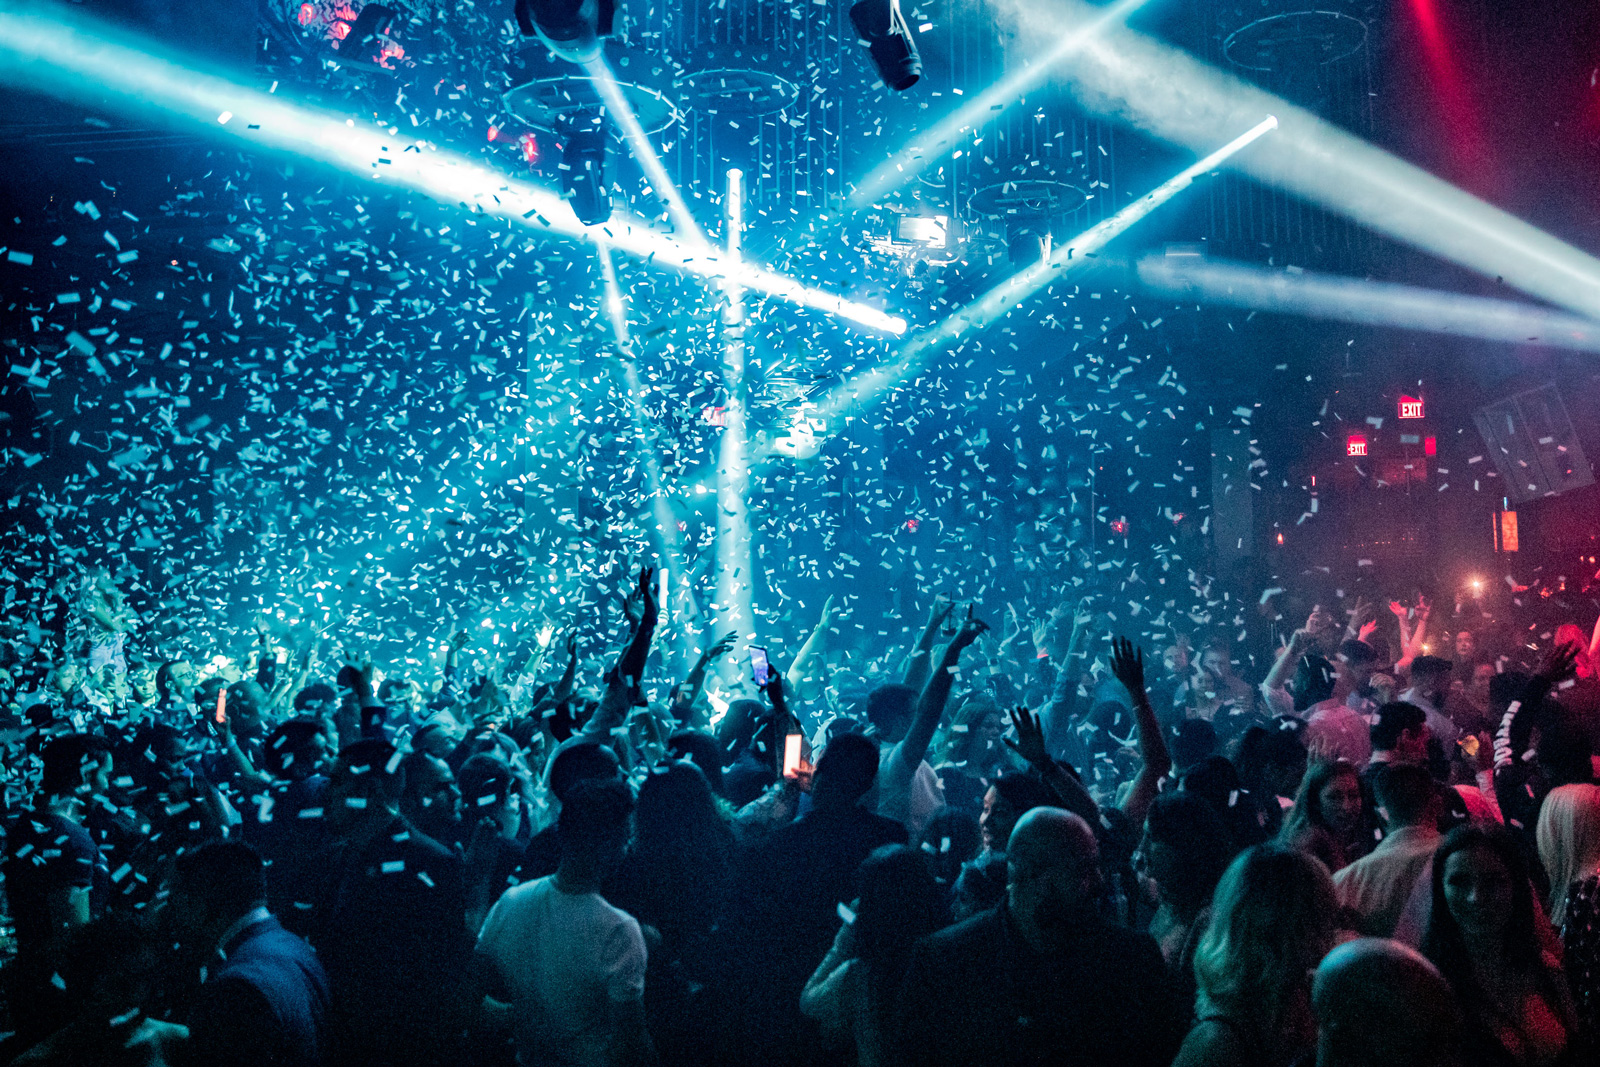 Celebrate New Year's Eve at Marquee Nightclub.